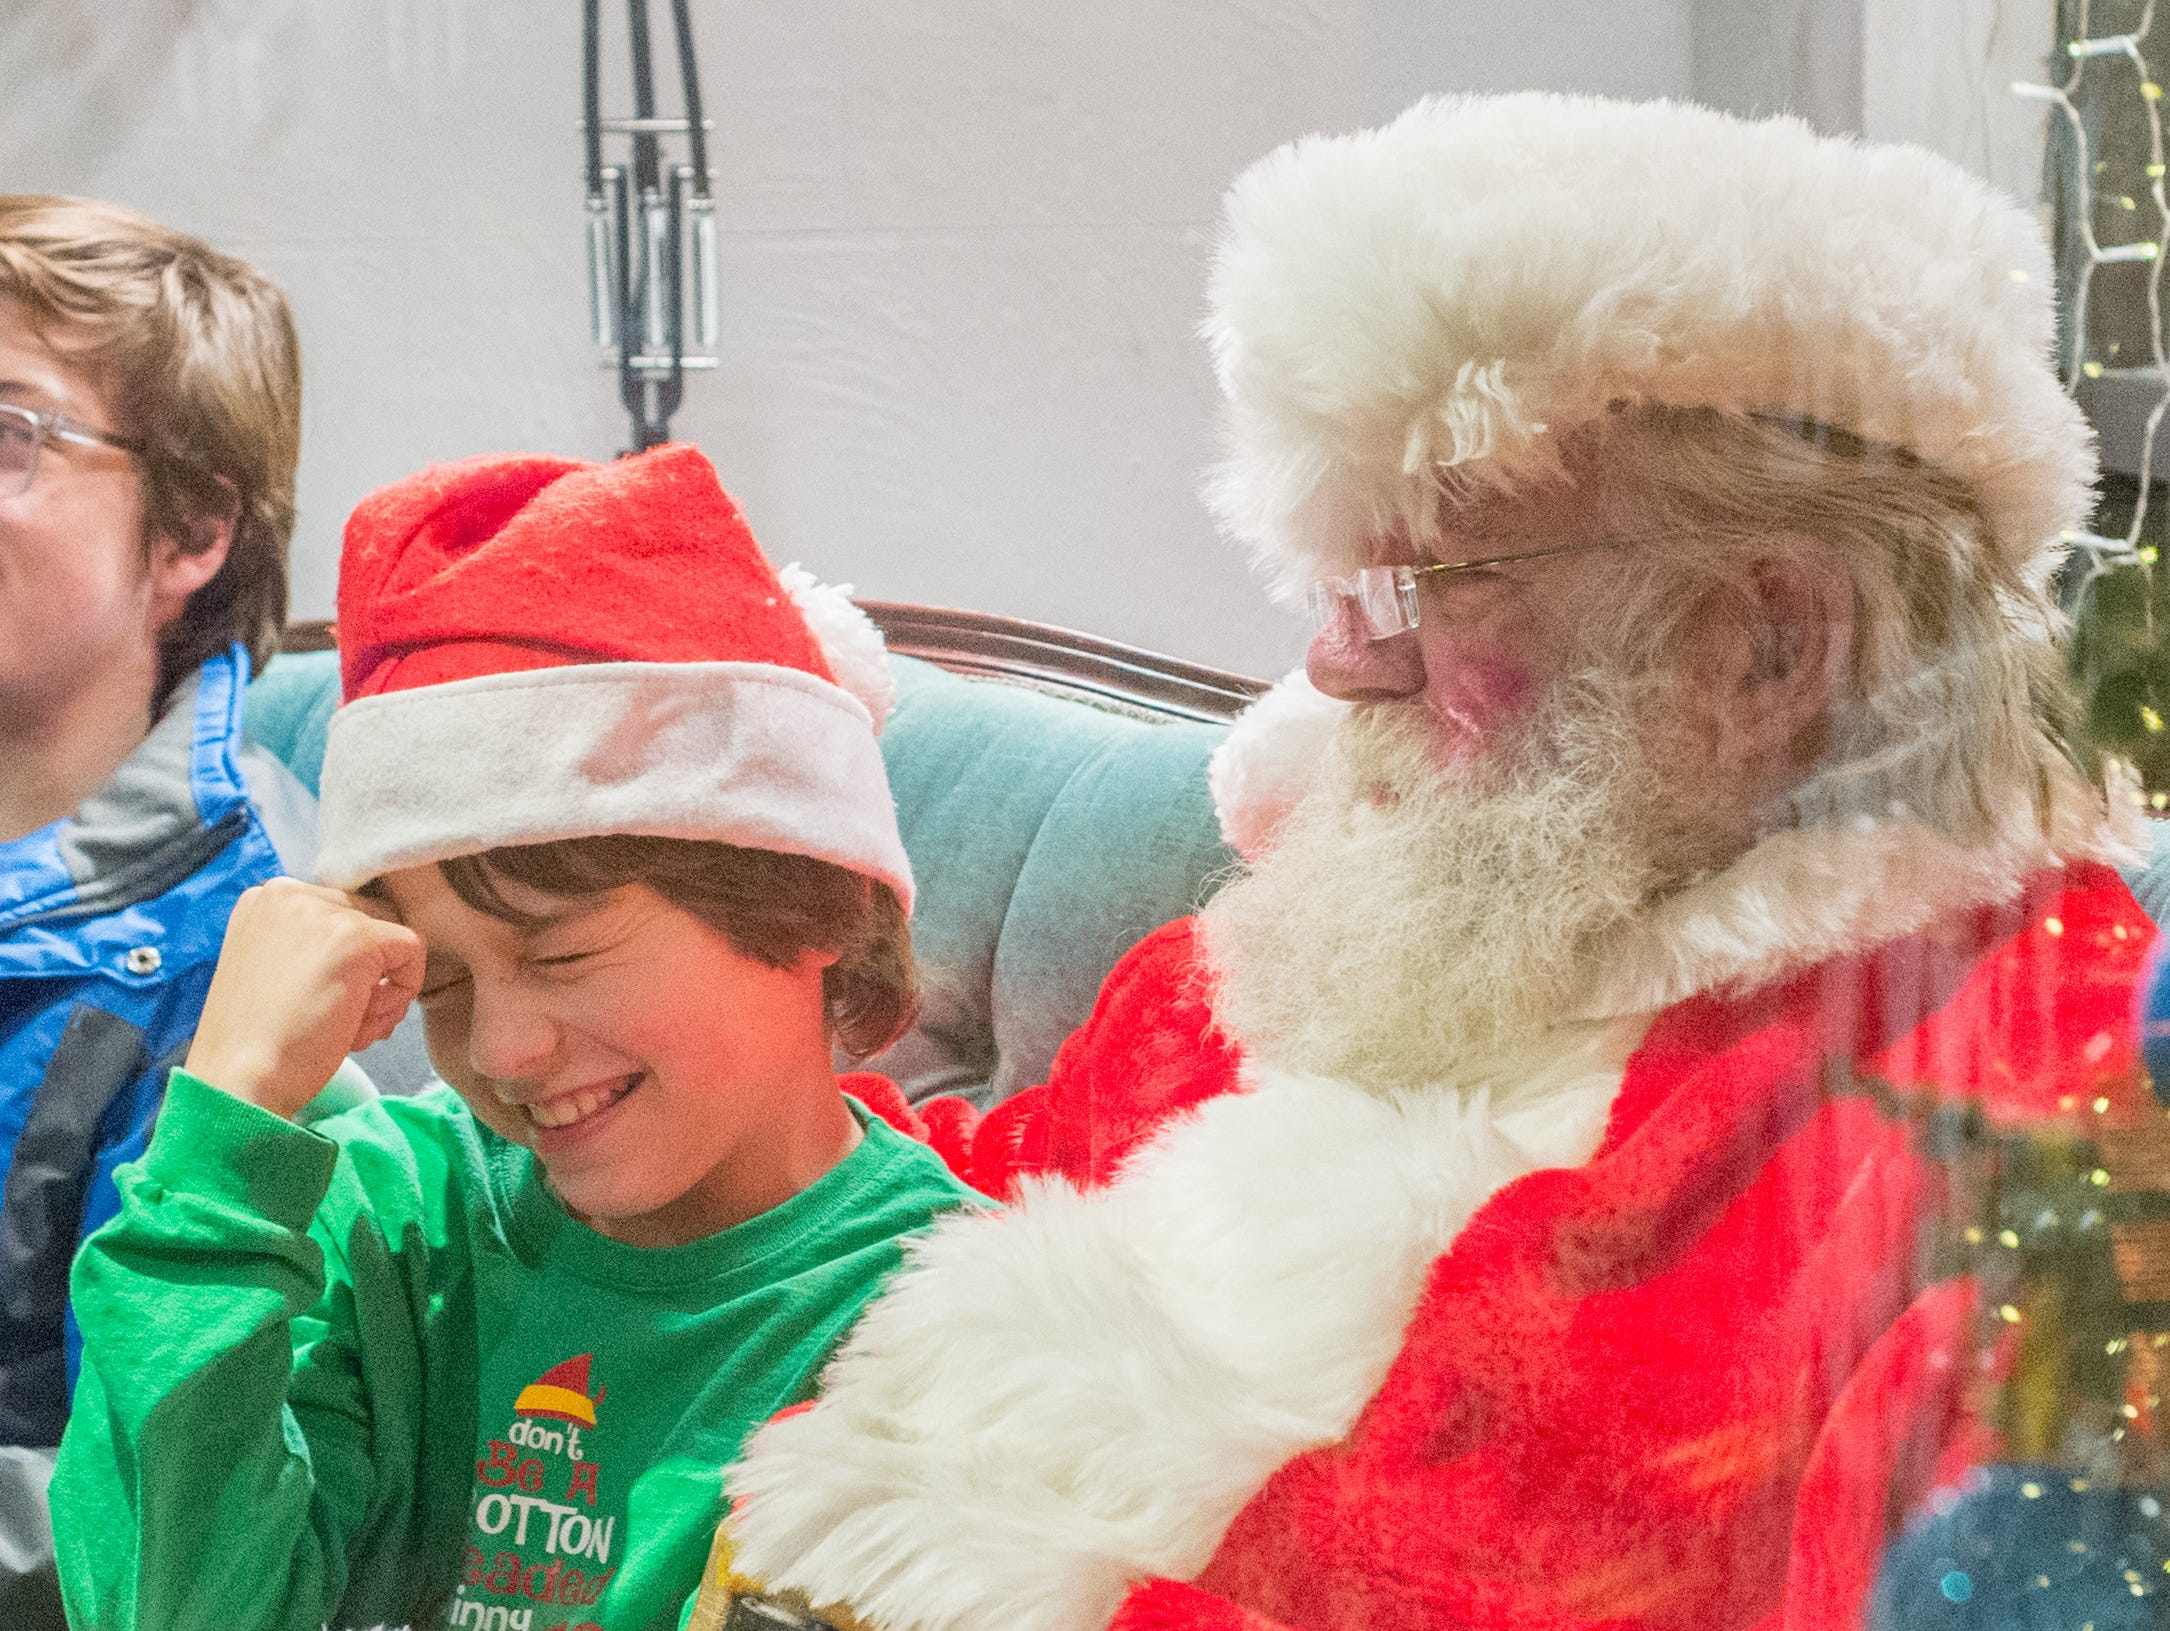 The Echols family enjoys the Santa on the Square event presented by Historic Downtown Gallatin at 106 Public Square on Saturday, Dec. 22.